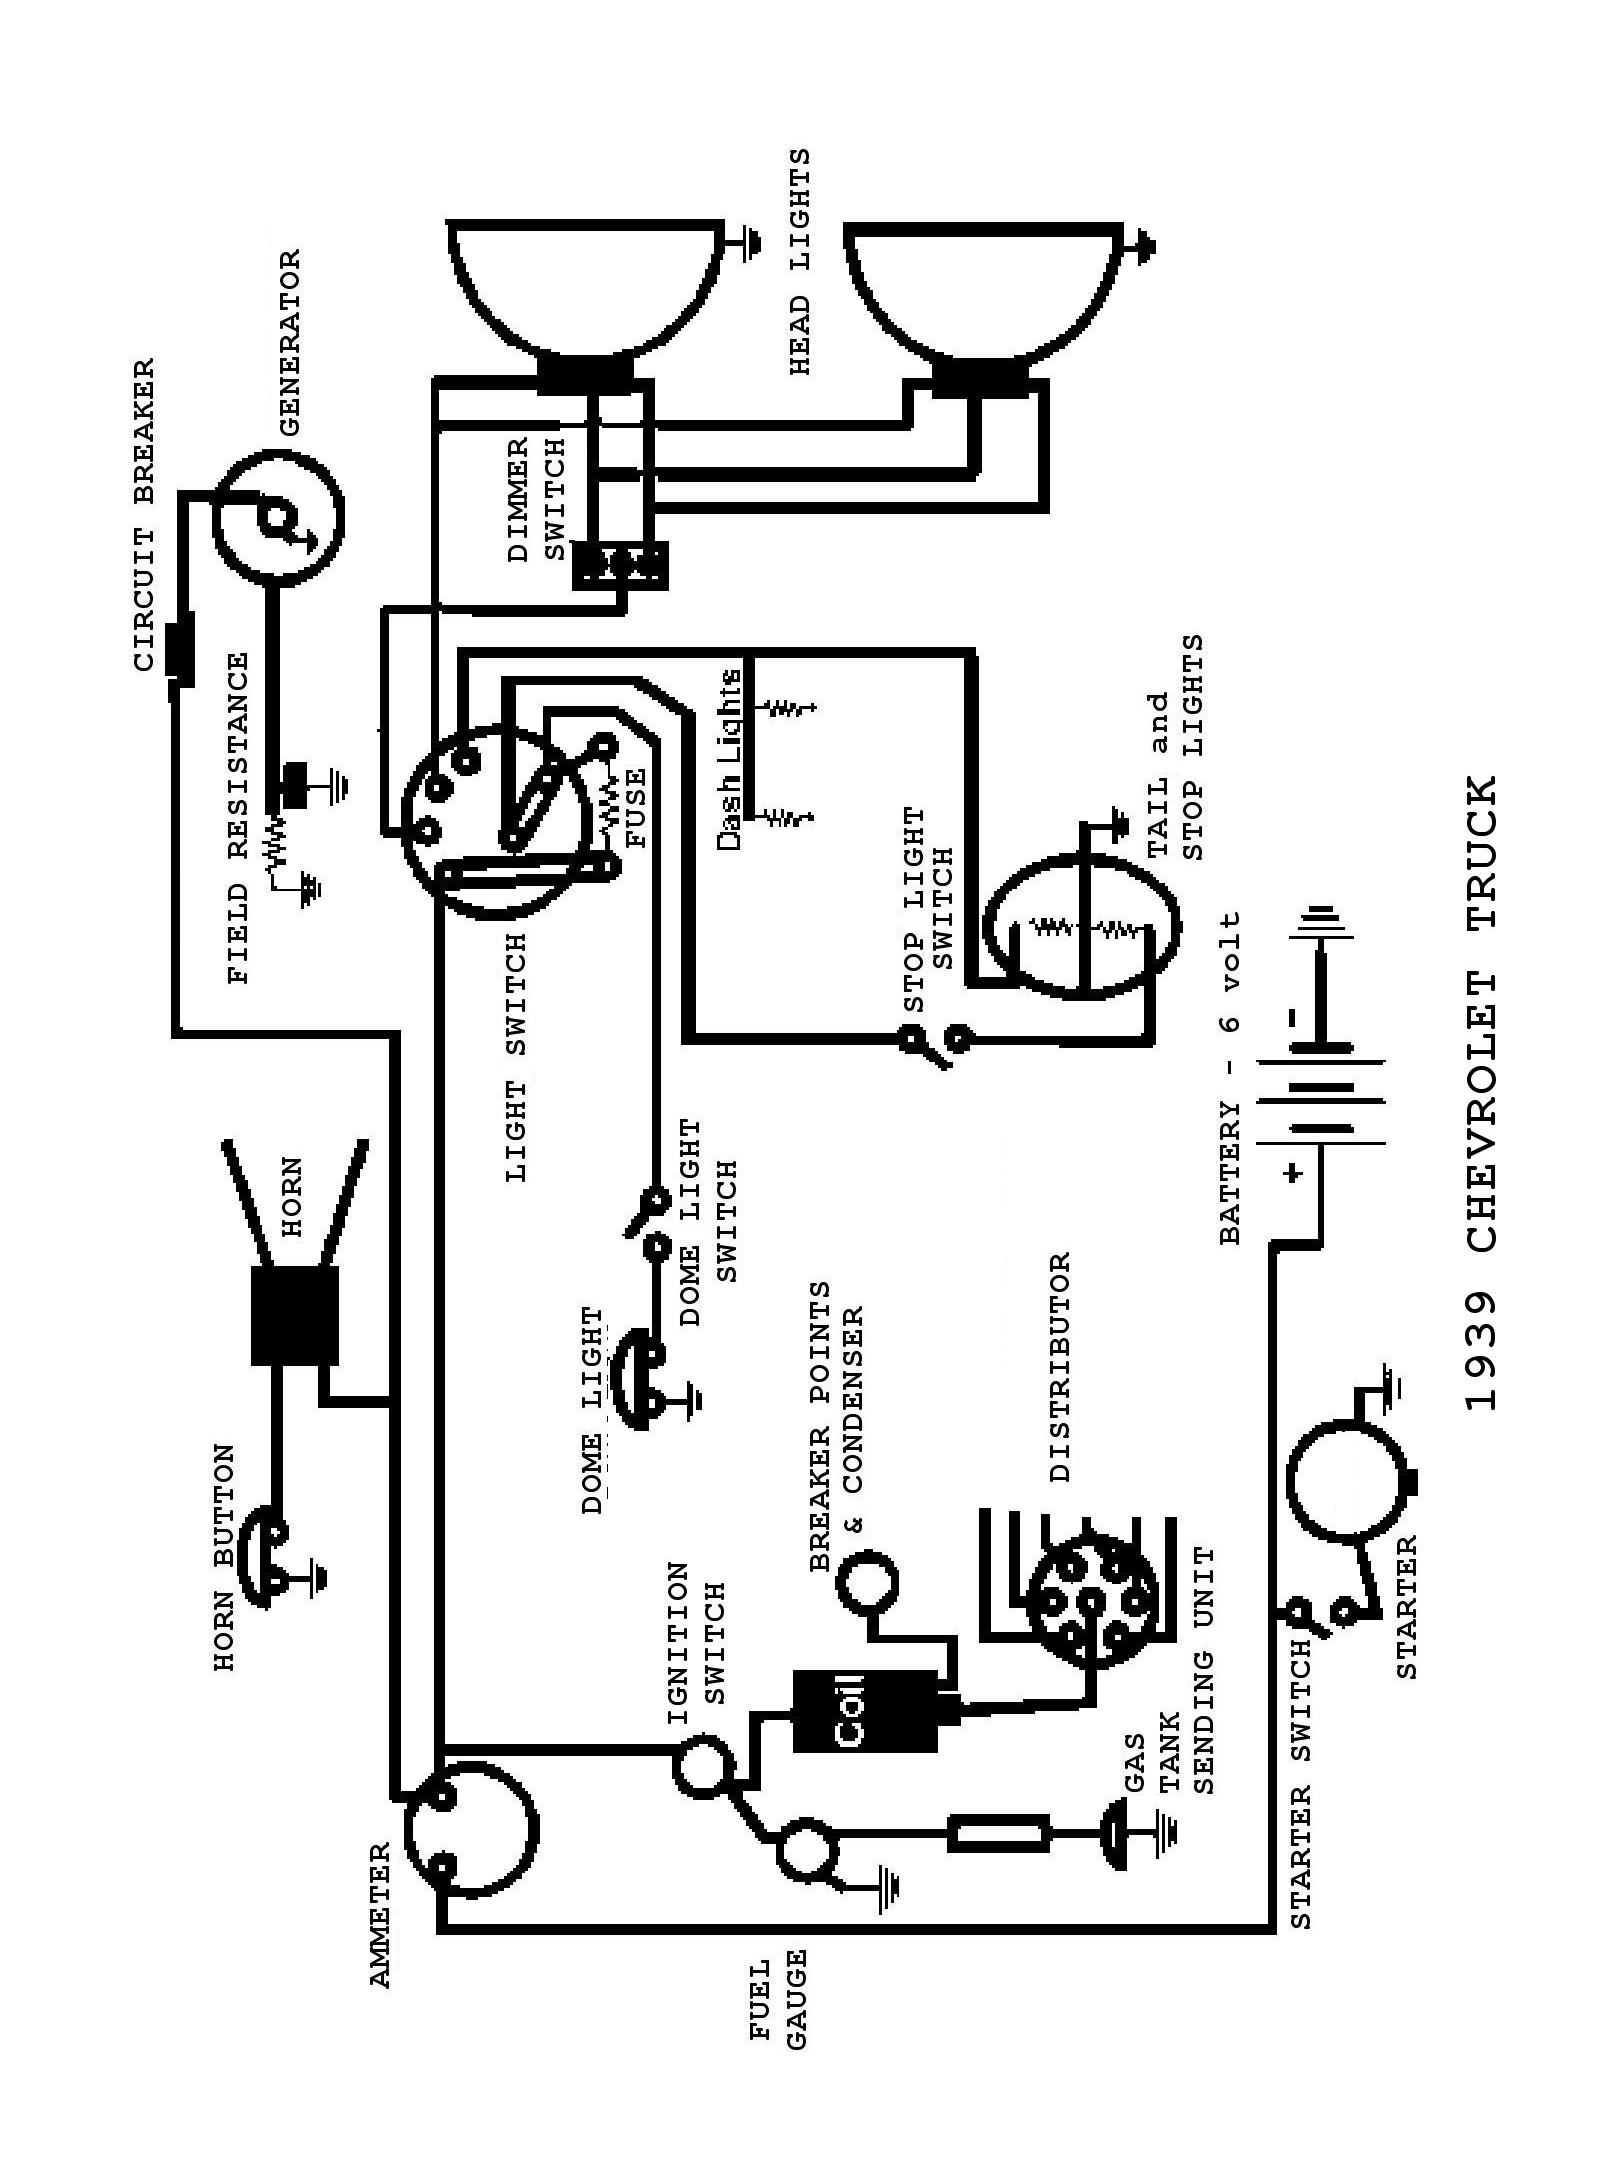 Pleasant International T444E Engine Diagram Wiring Library Wiring 101 Capemaxxcnl